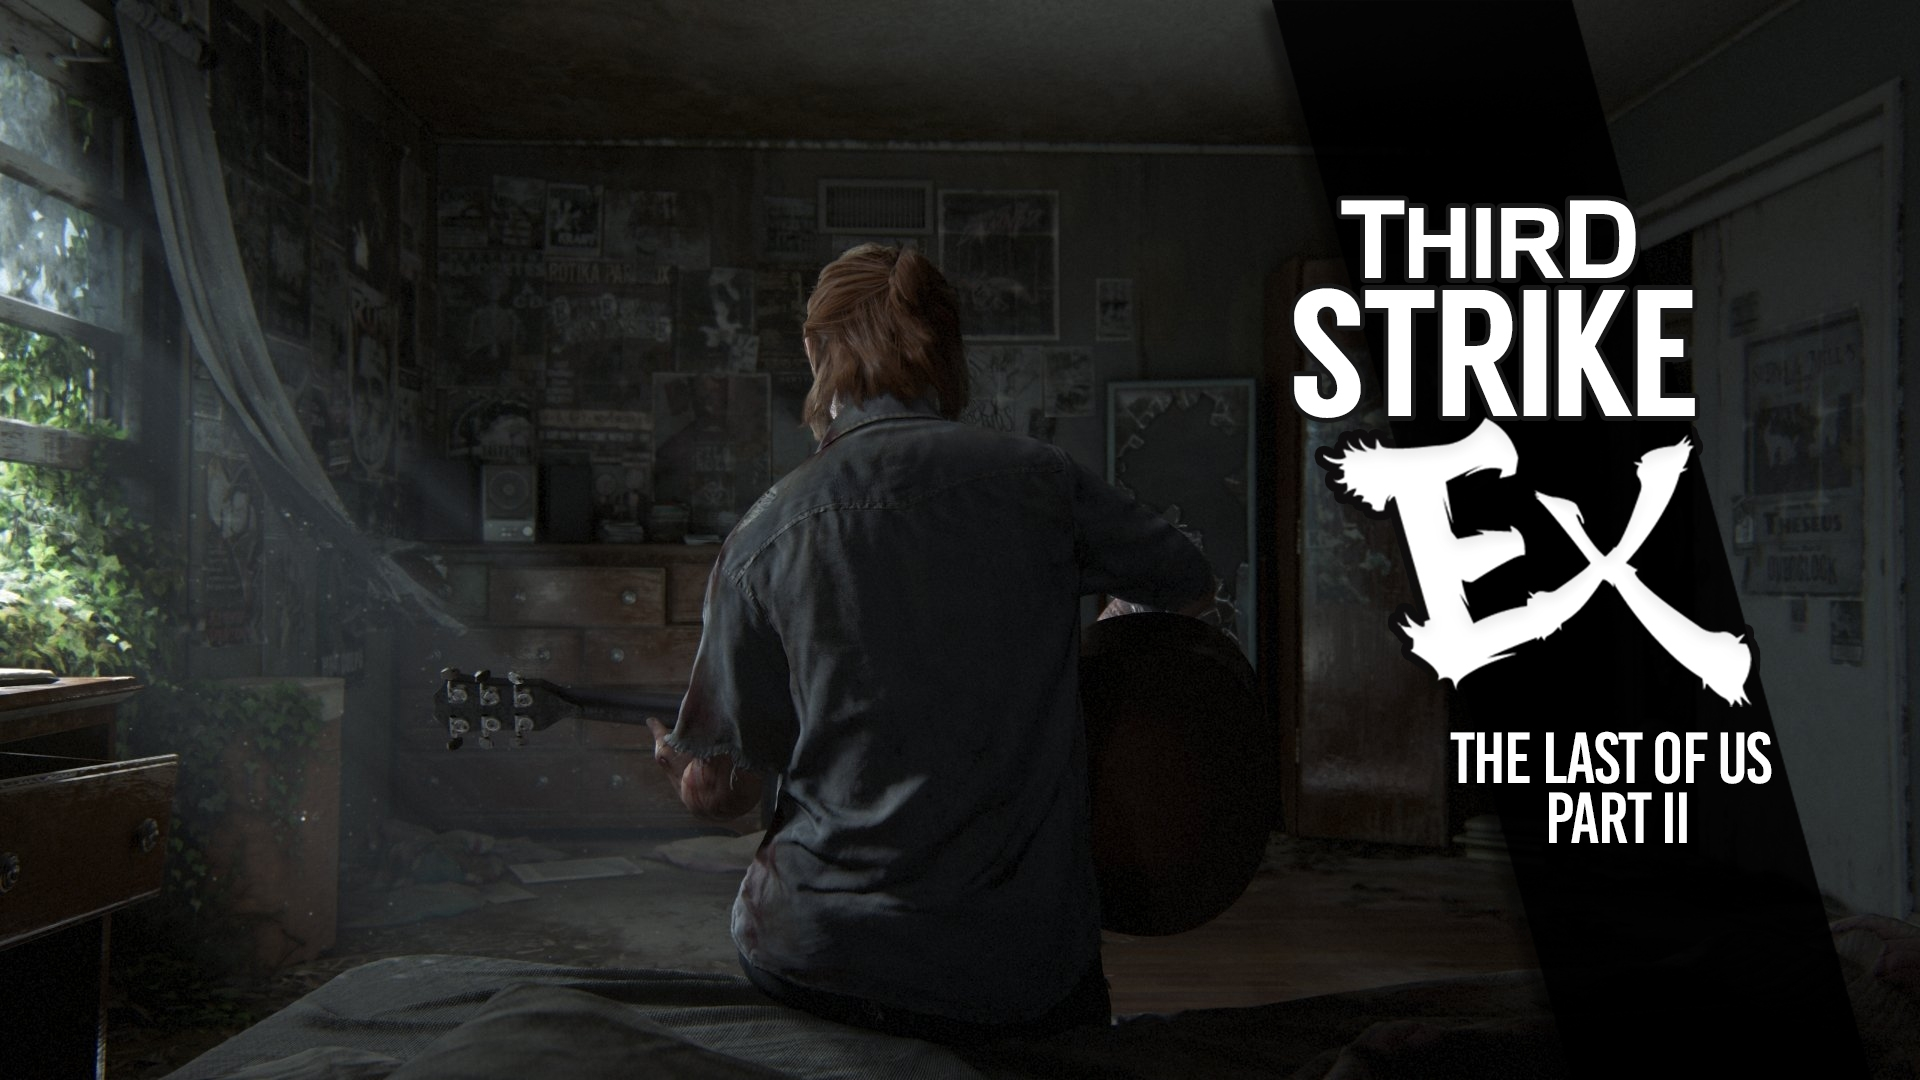 Third Strike #EX - The Last of Us Part II